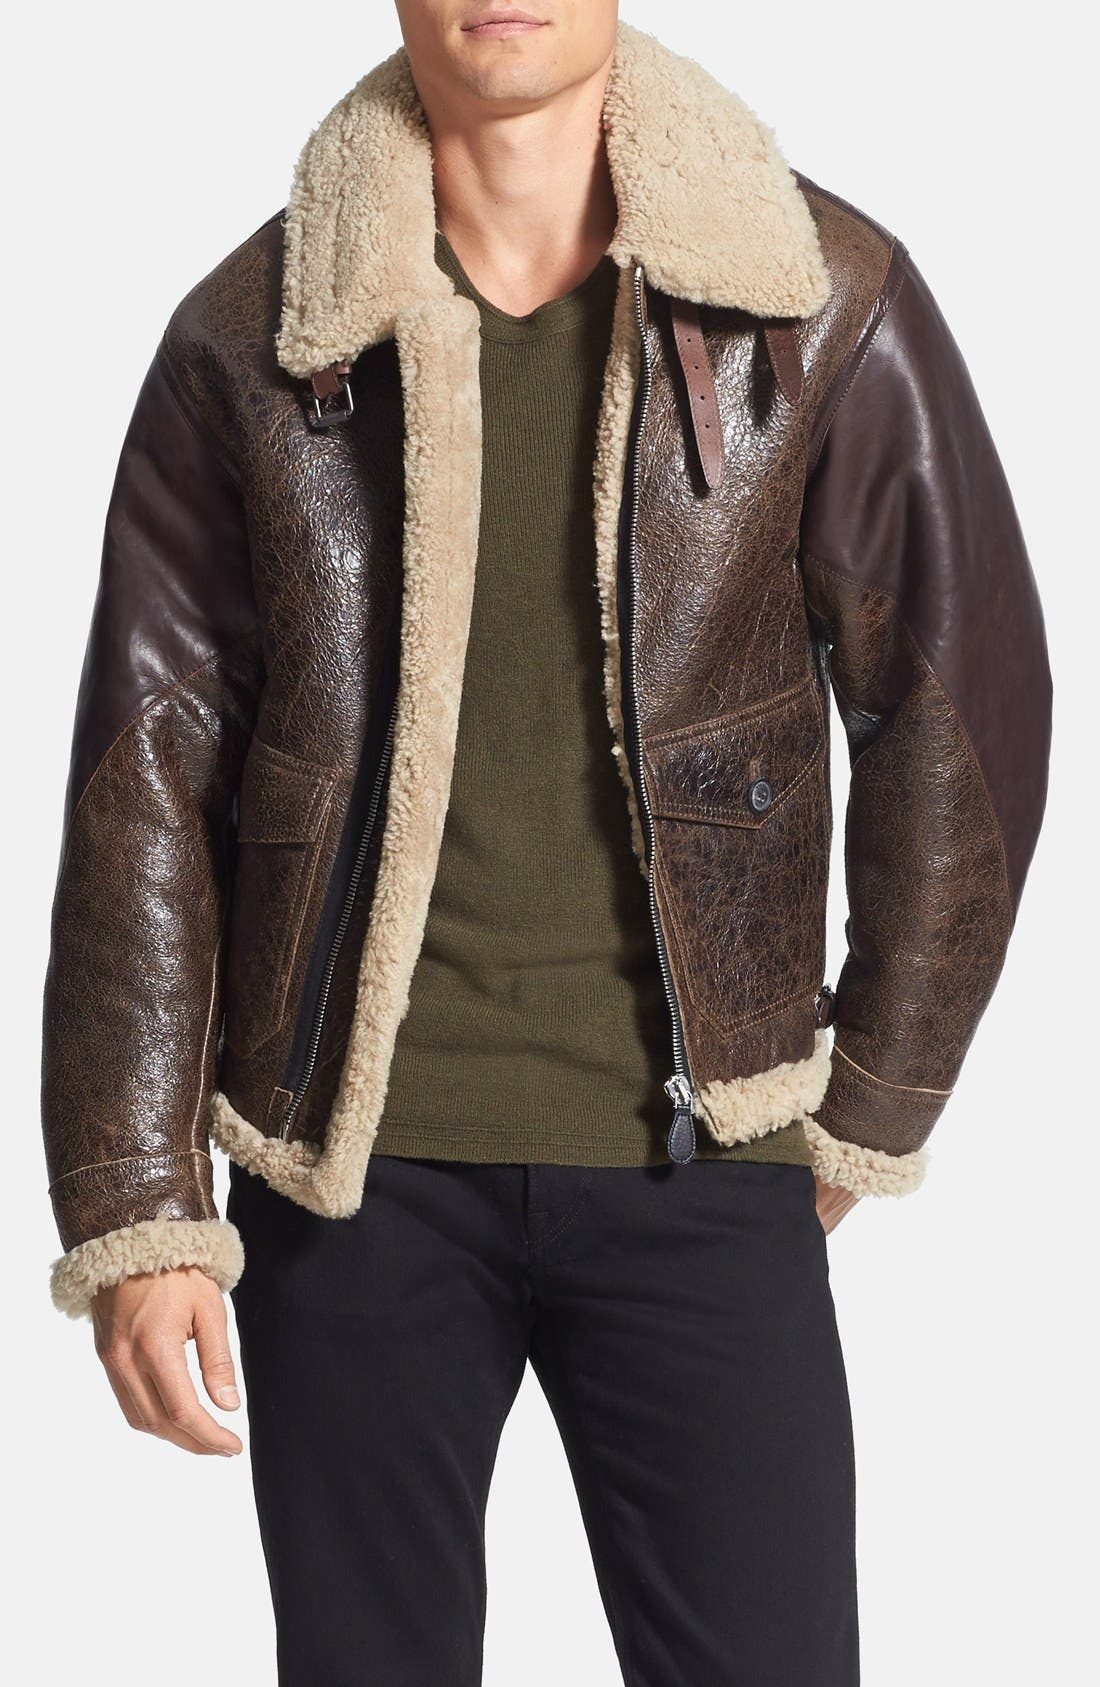 Main Image - Burberry Brit 'Ormsby' Distressed Leather Jacket with Lamb Shearling Trim